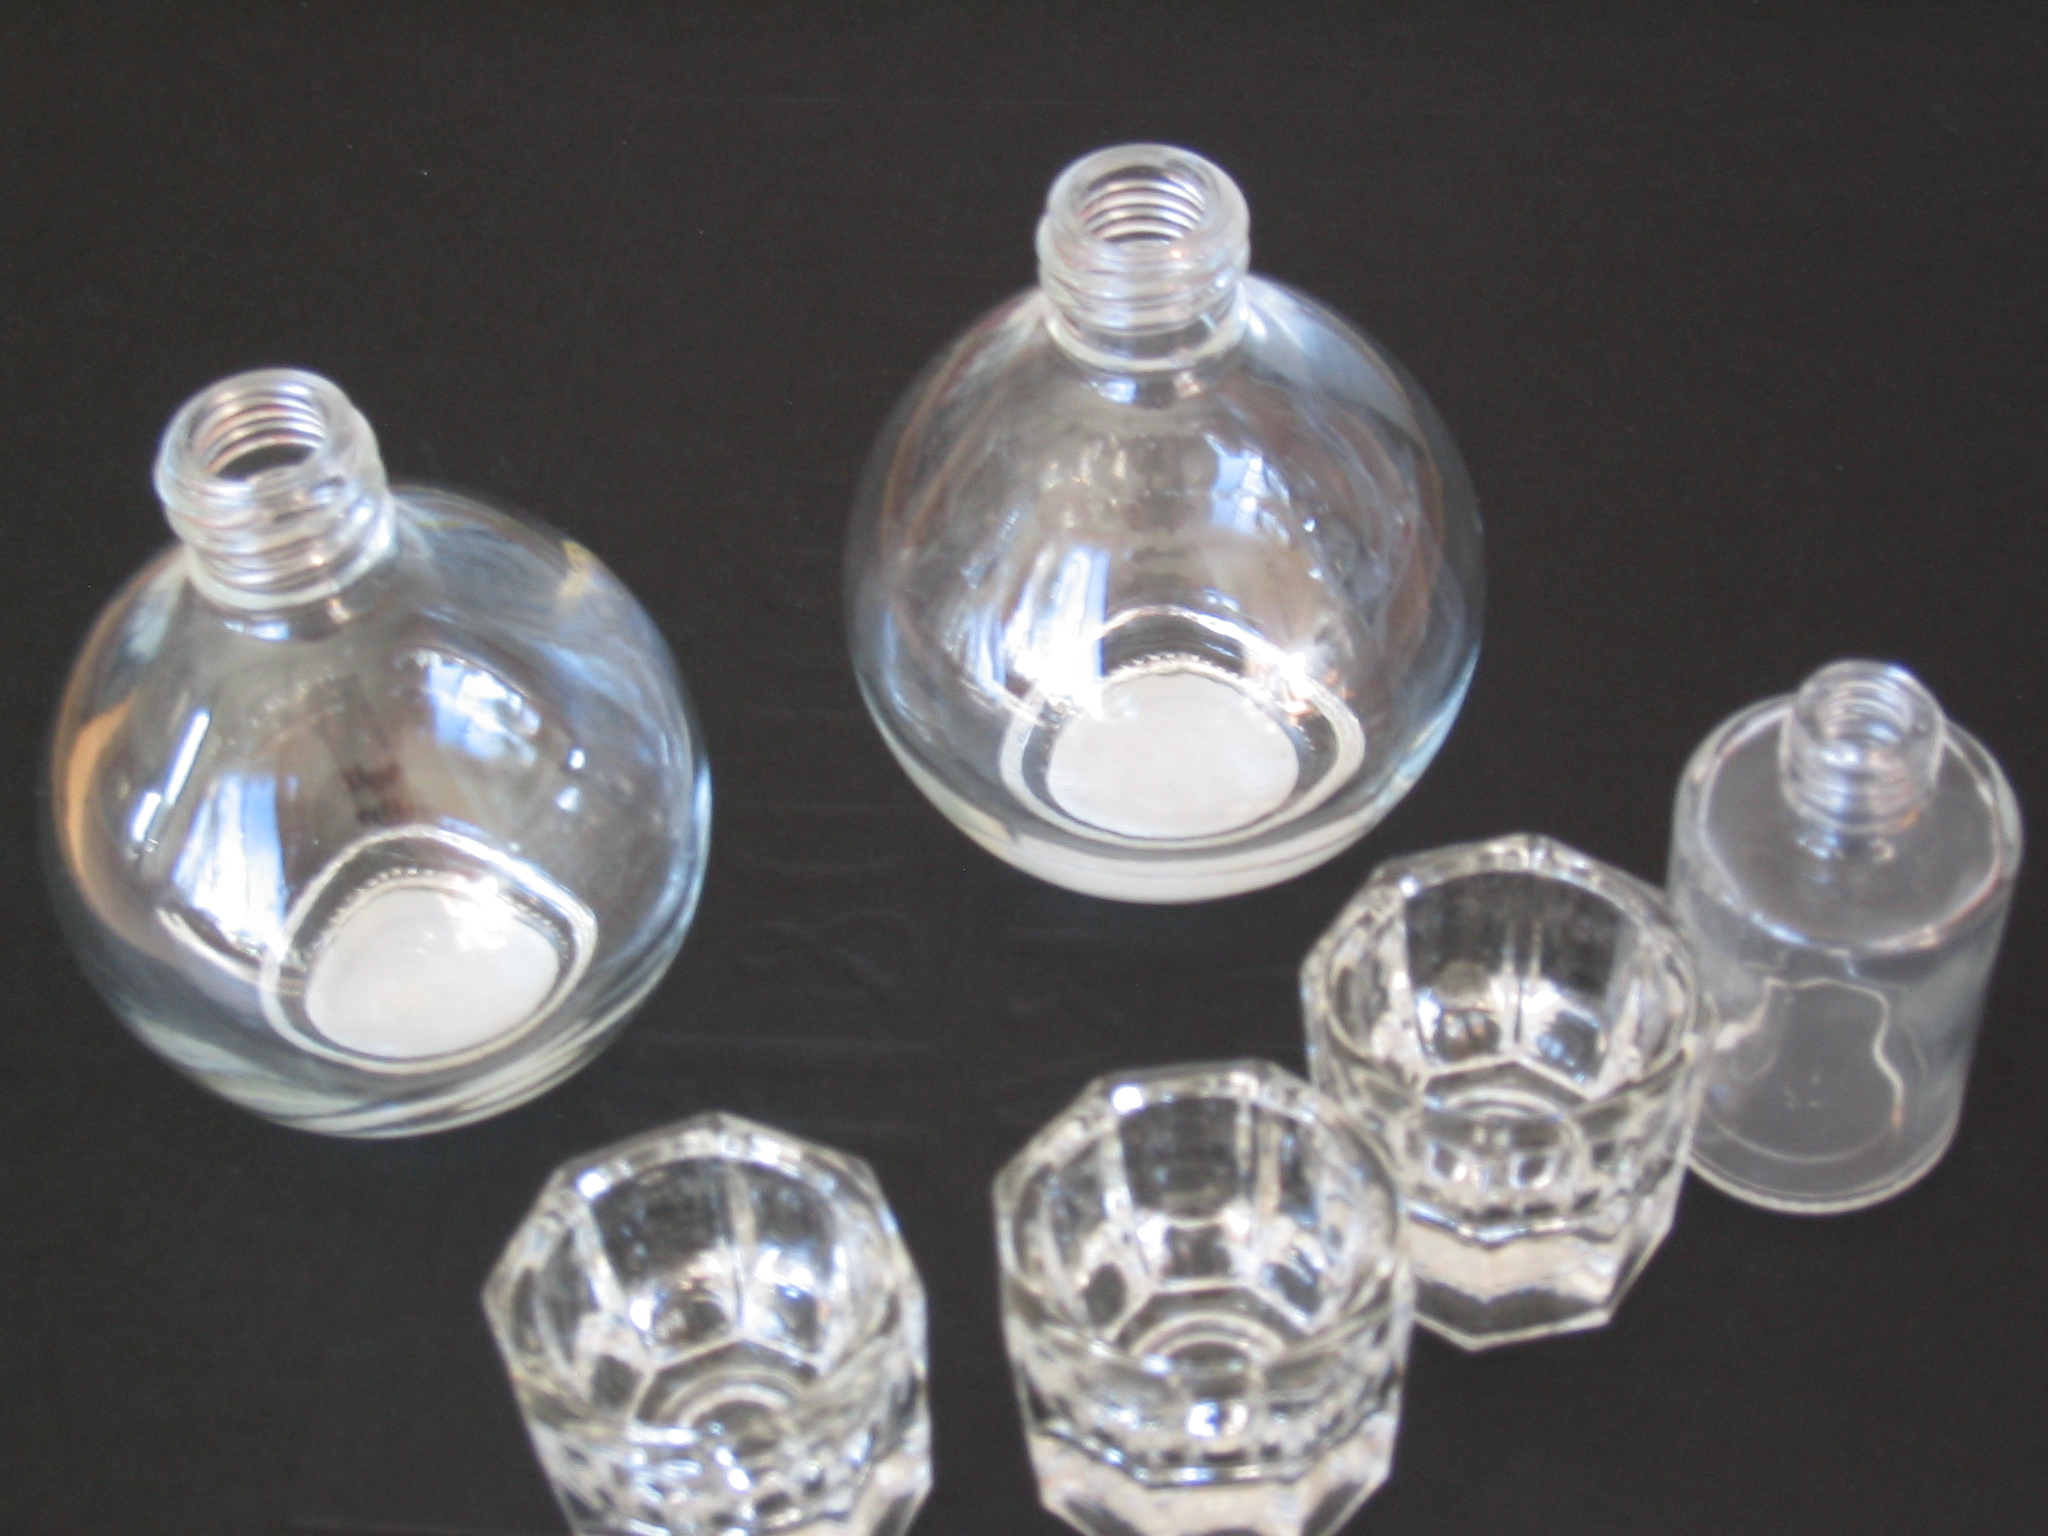 Standard and Custom Glass Manufacturing-No Mold Charges